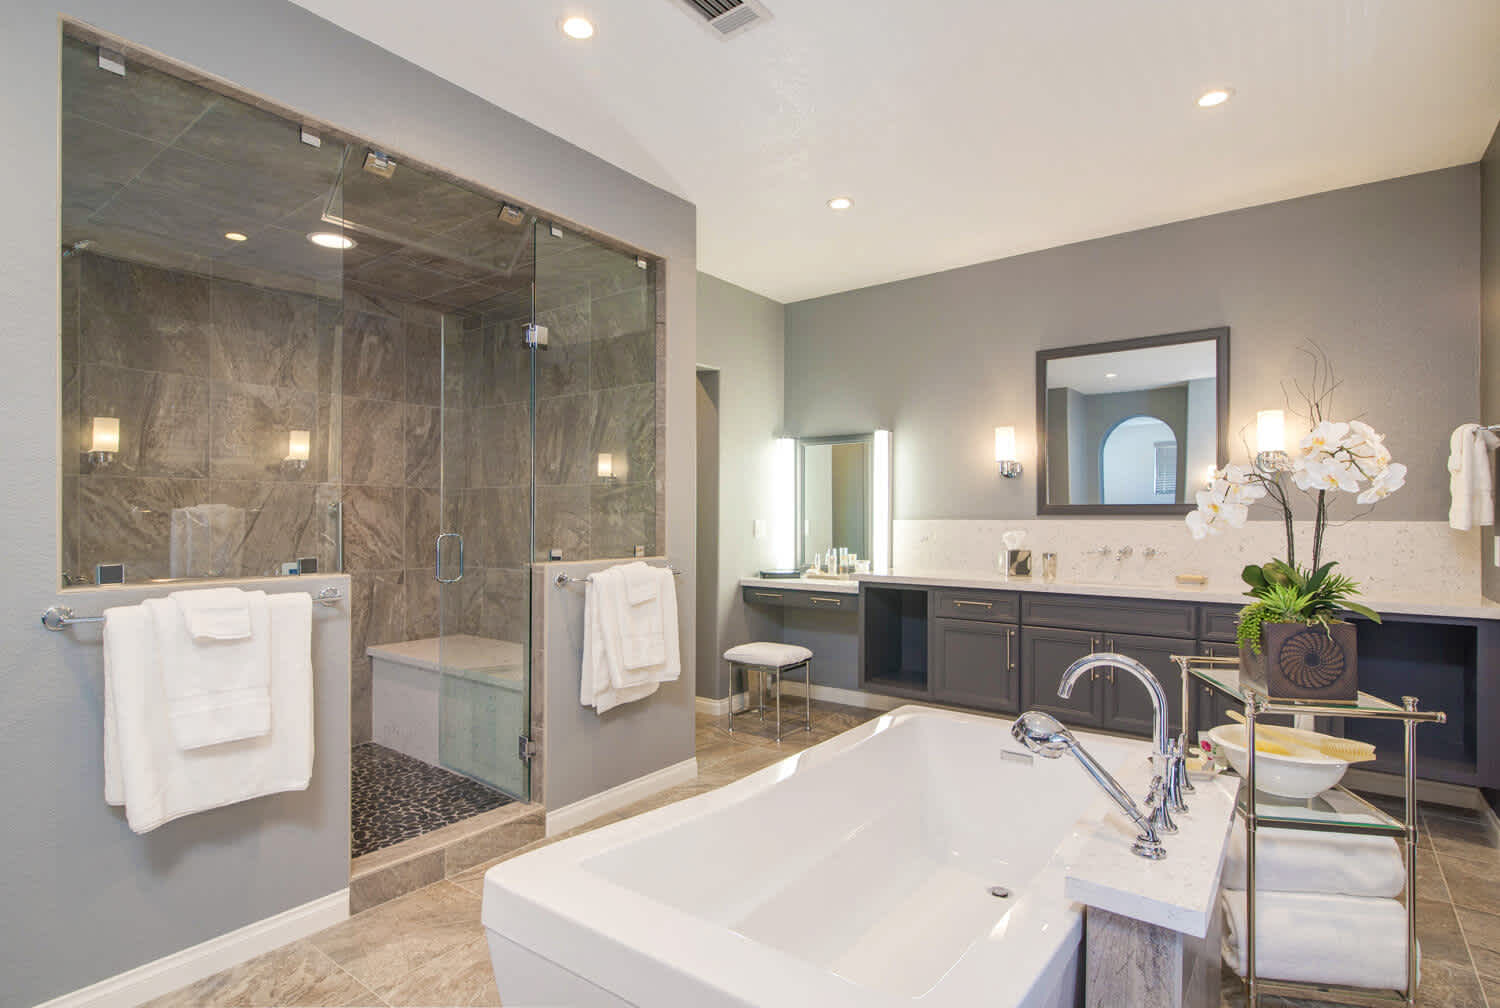 9 Key Tips And Tricks For Planning A Bathroom Remodel